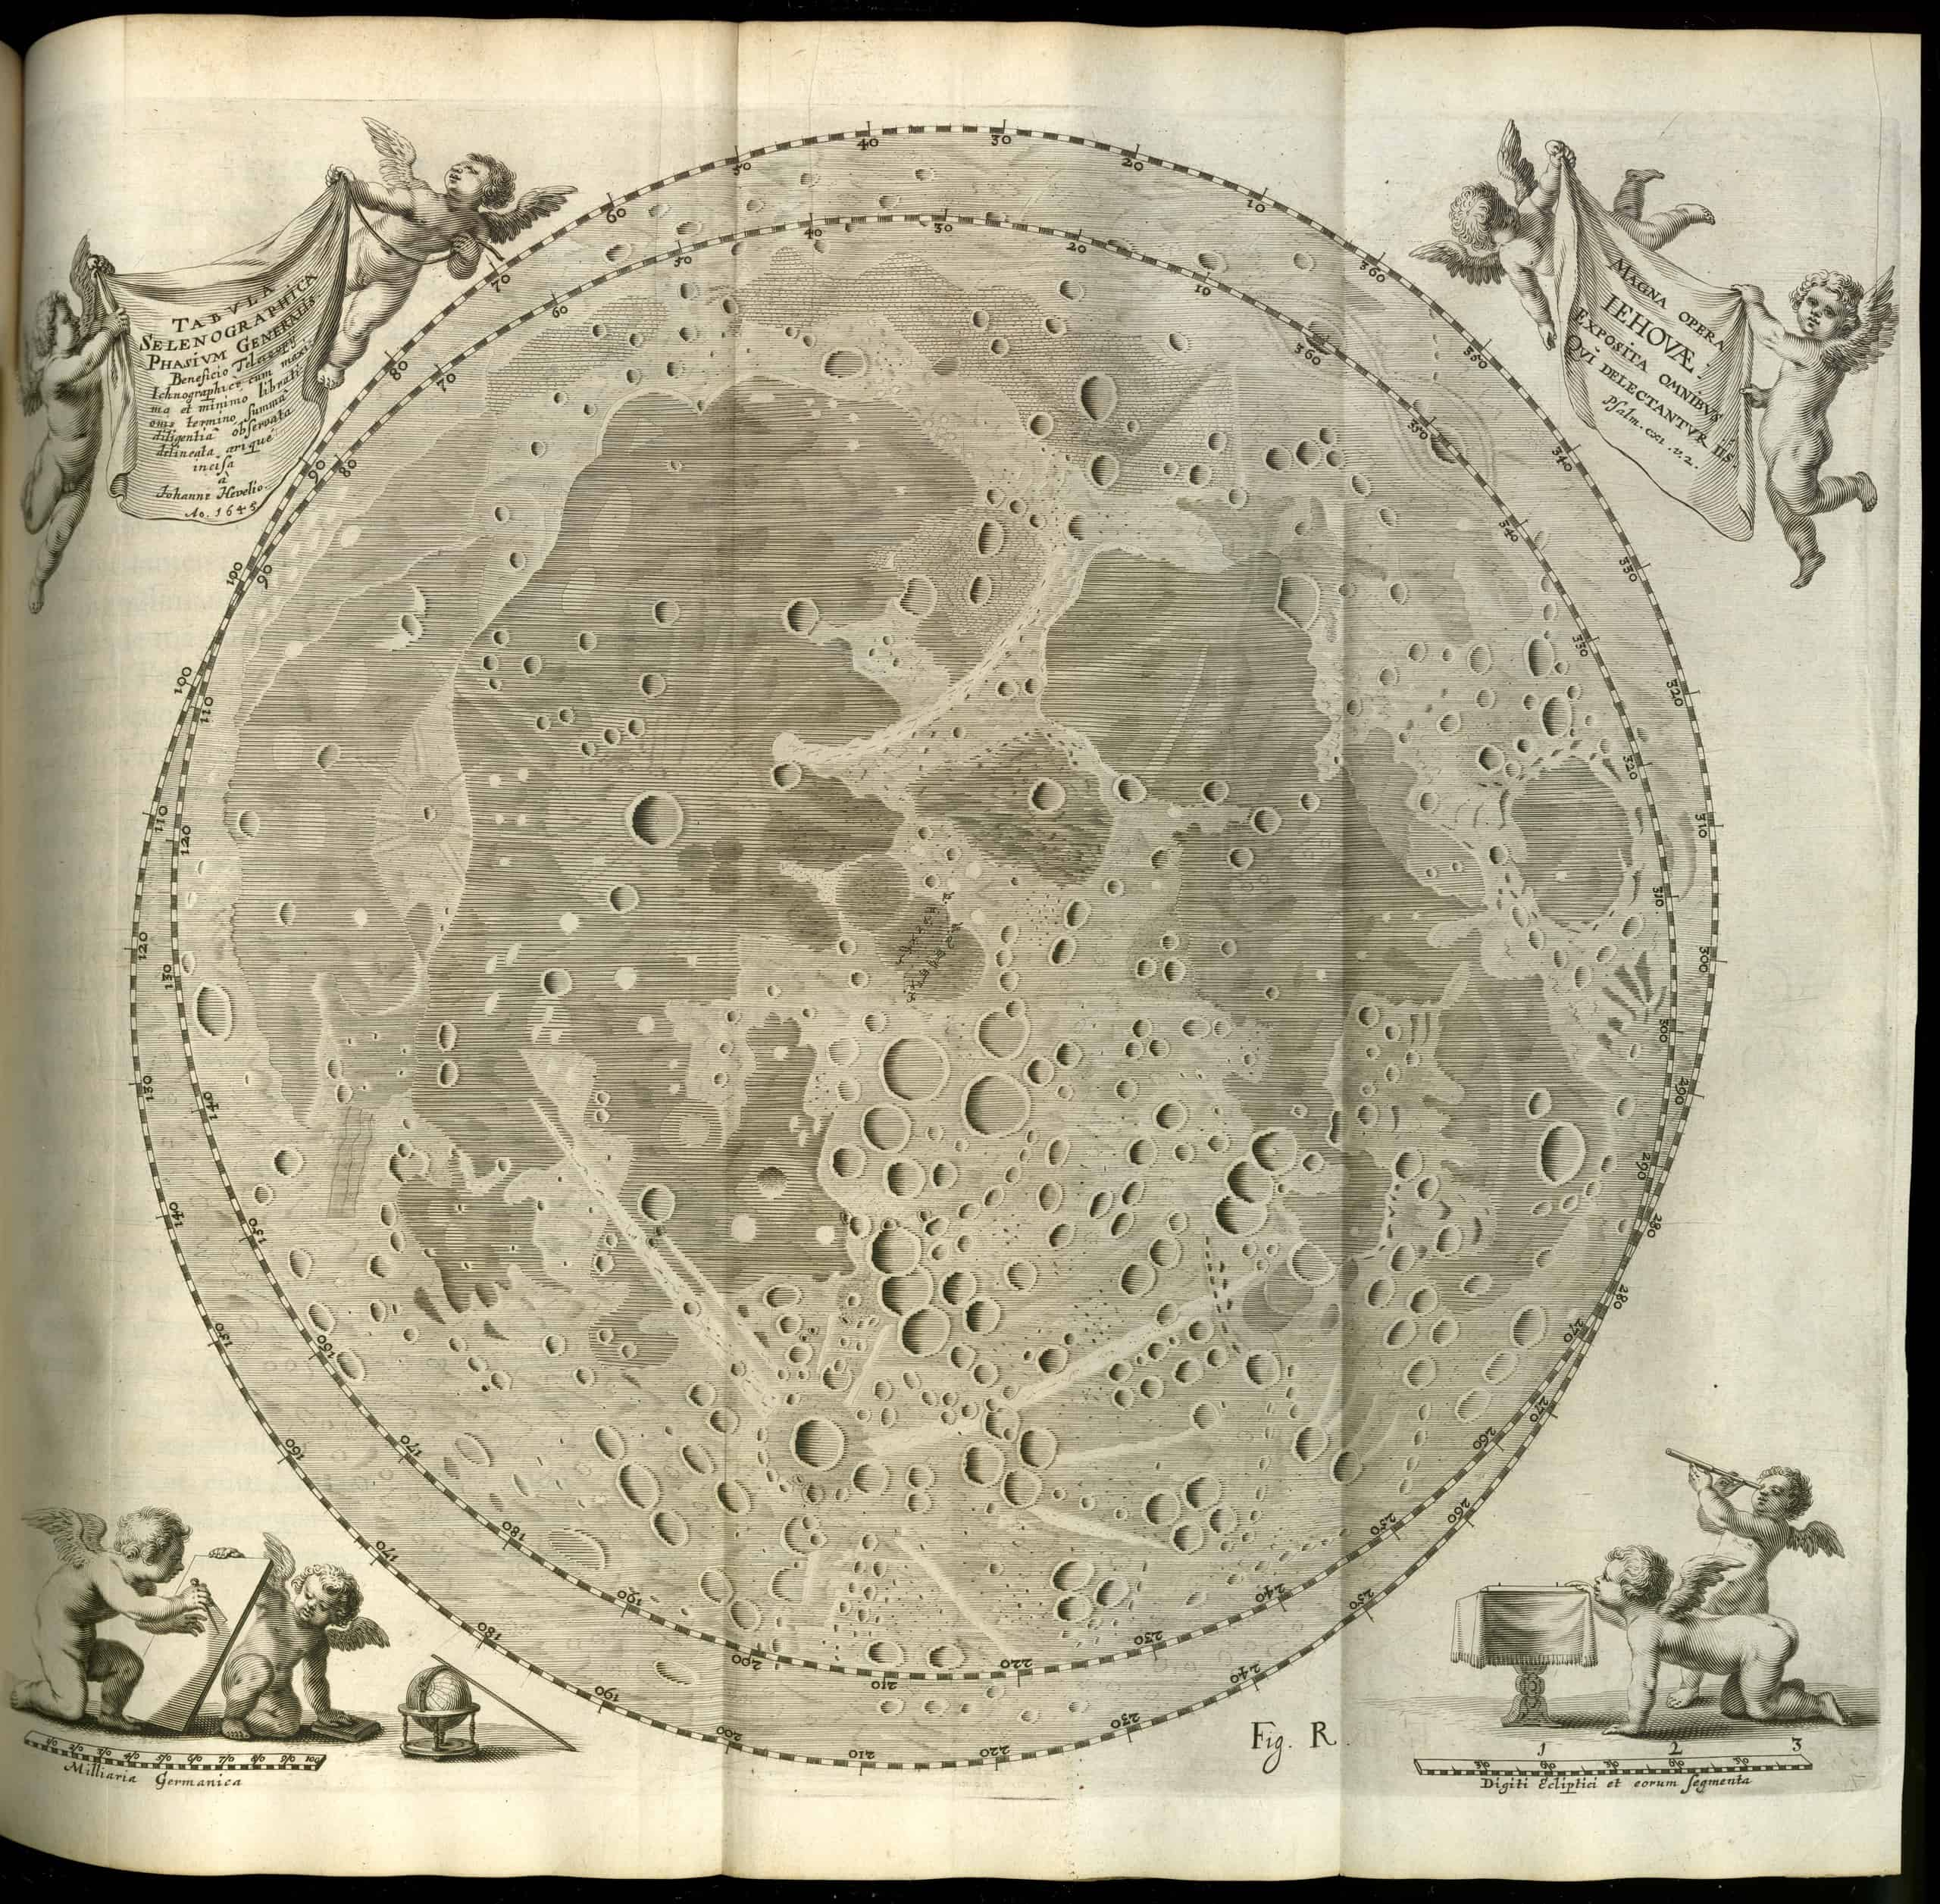 Fold out map of the moon from Johann Hevelius, Selenographia